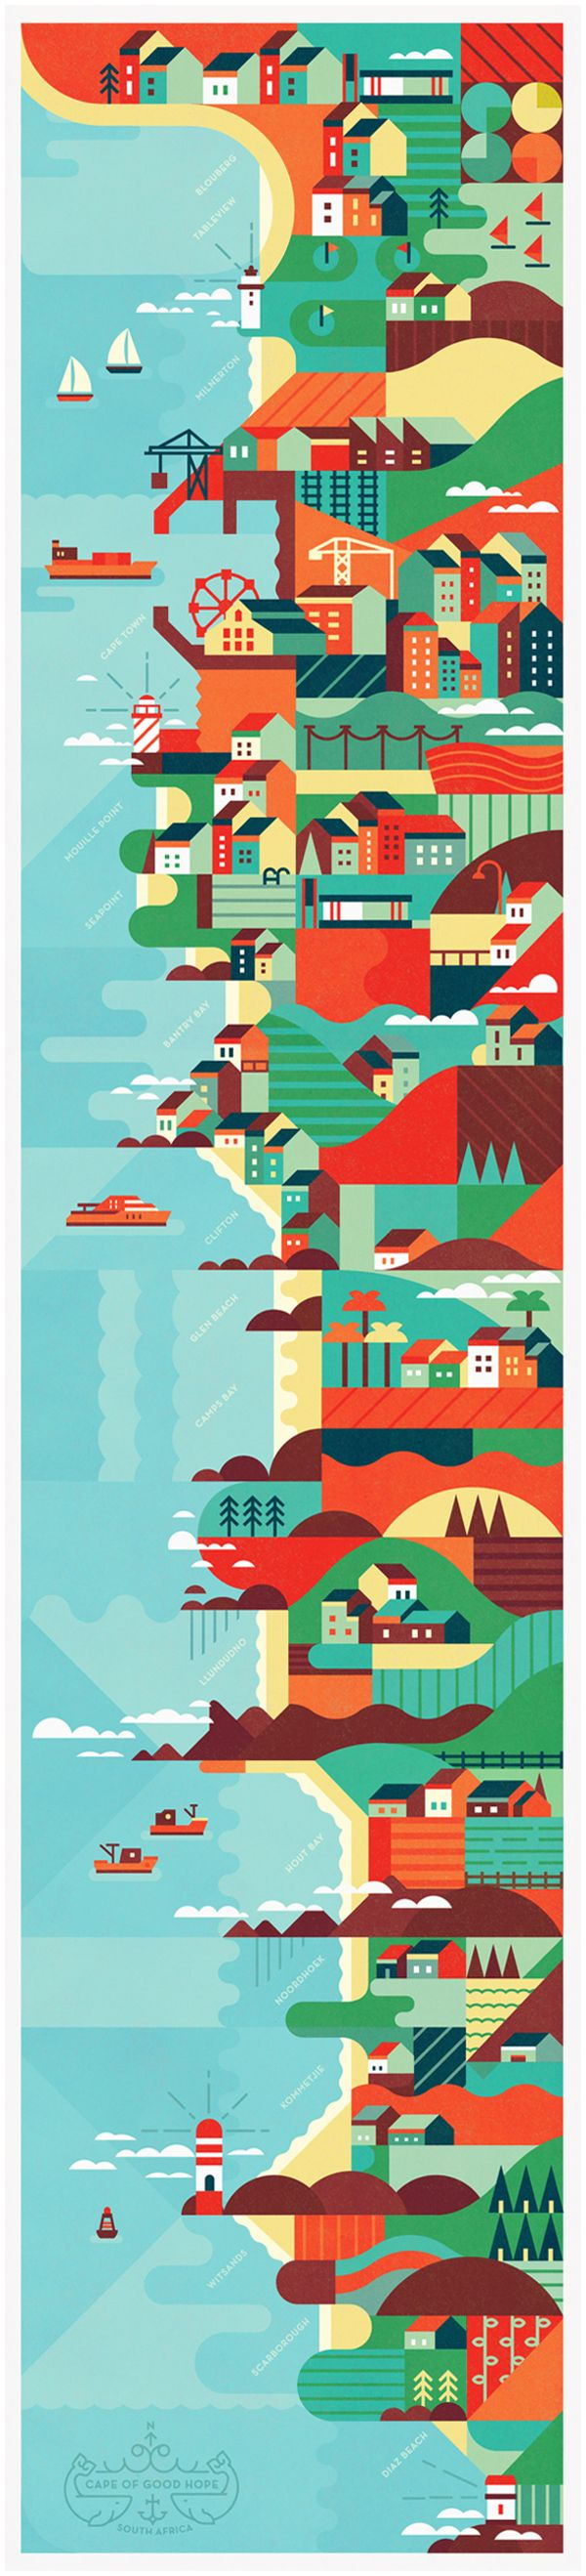 Cape of Good Hope by MUTI , via Behance